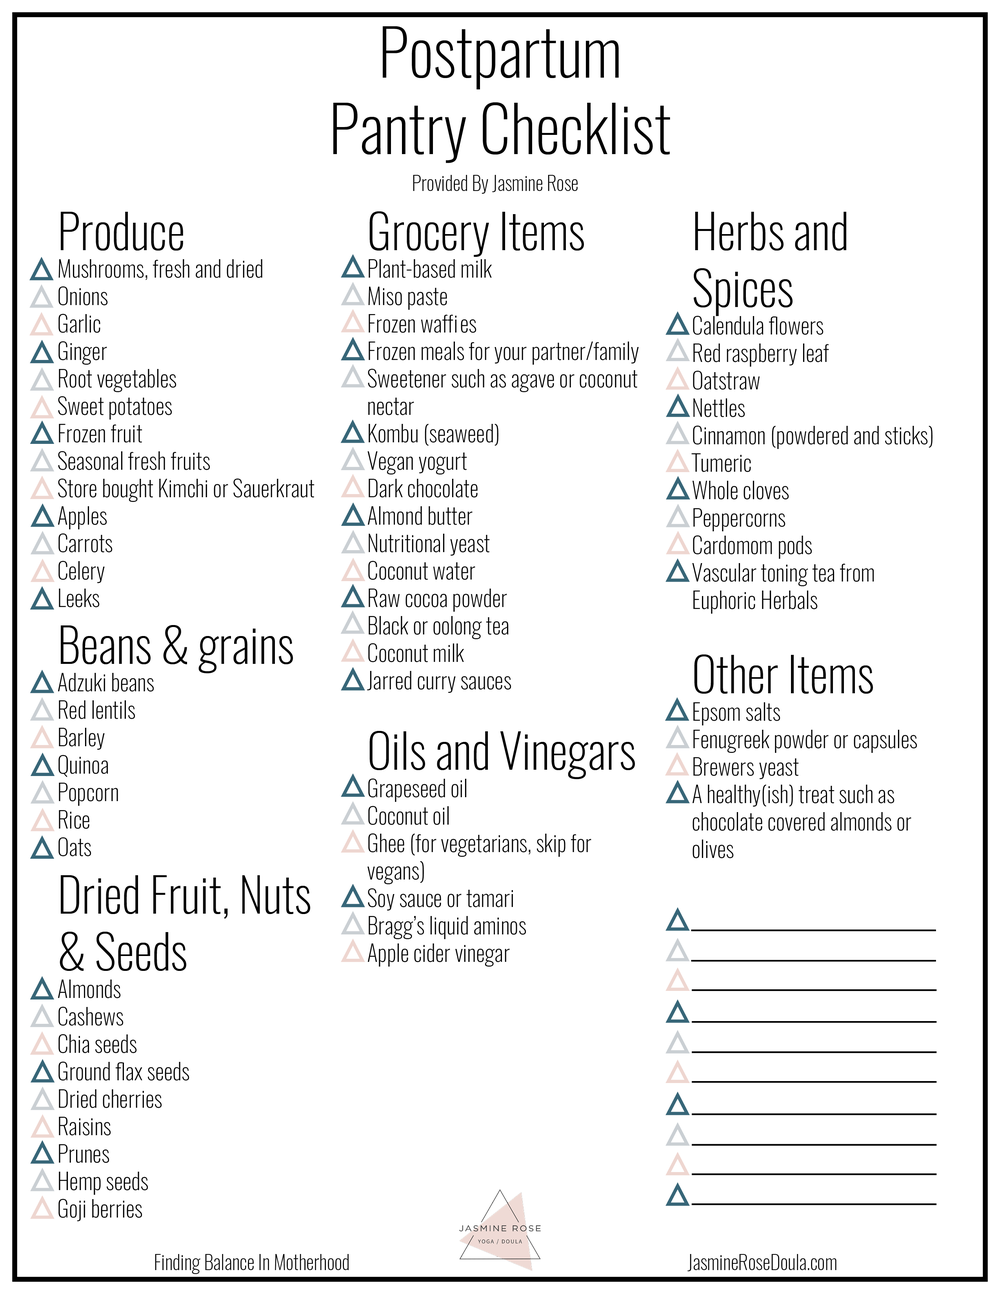 Click here for the PDF of the Postpartum Pantry Checklist.